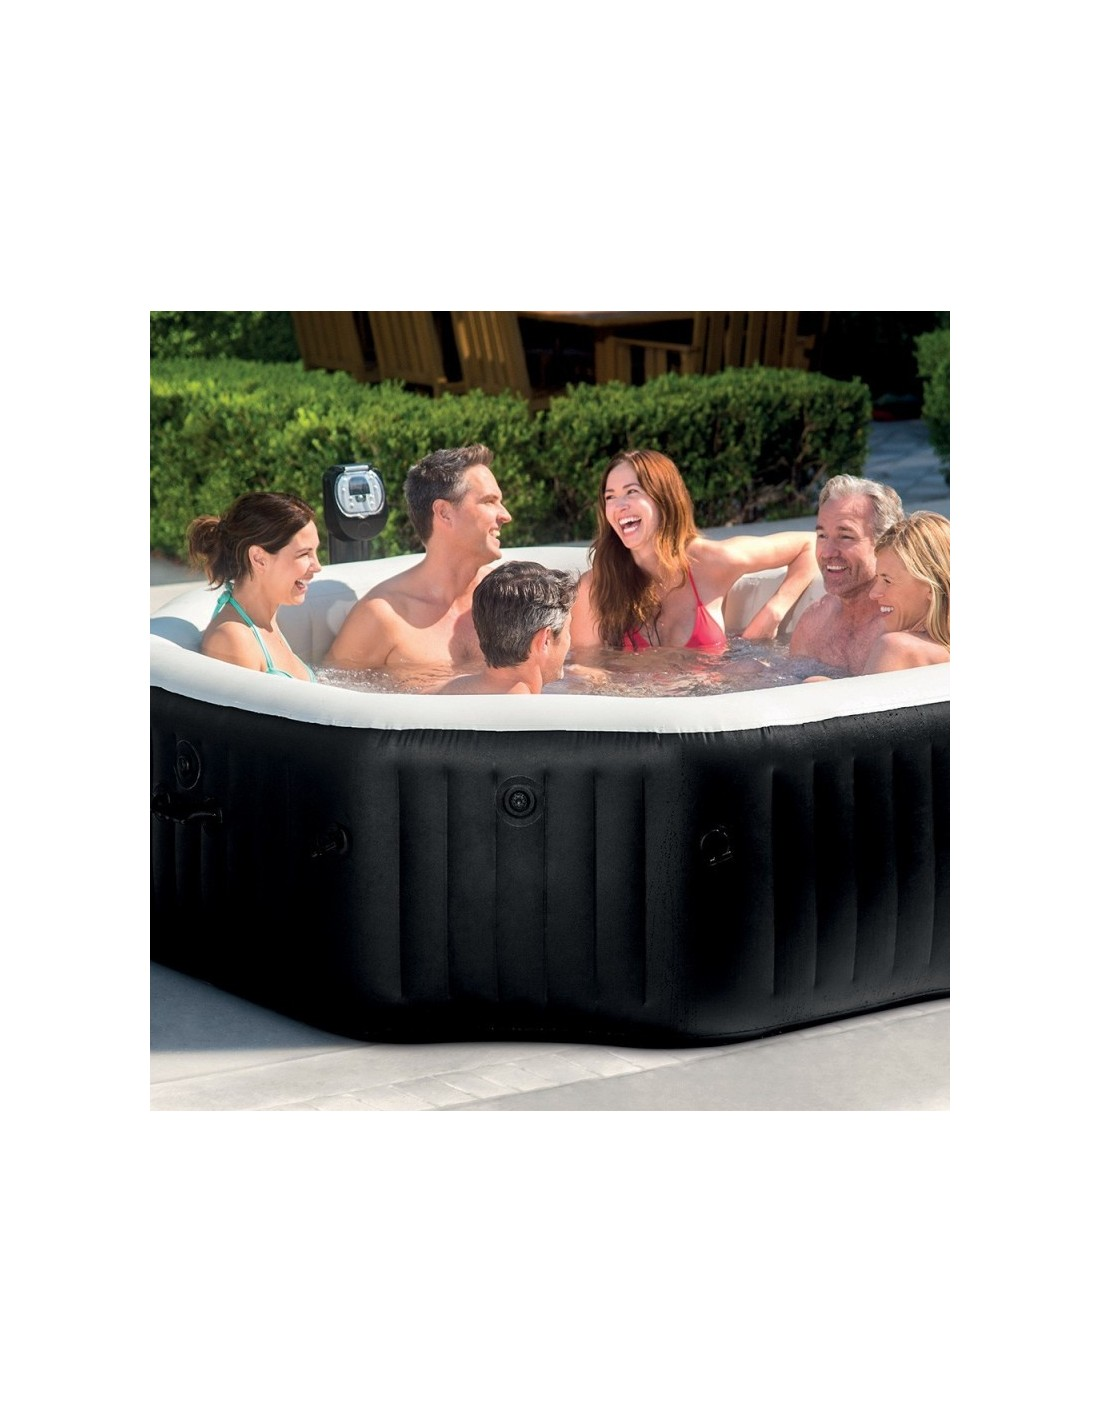 Amenagement Spa Gonflable Interieur spa gonflable intex octogonal 6 places - 2.18 x 0.76 m